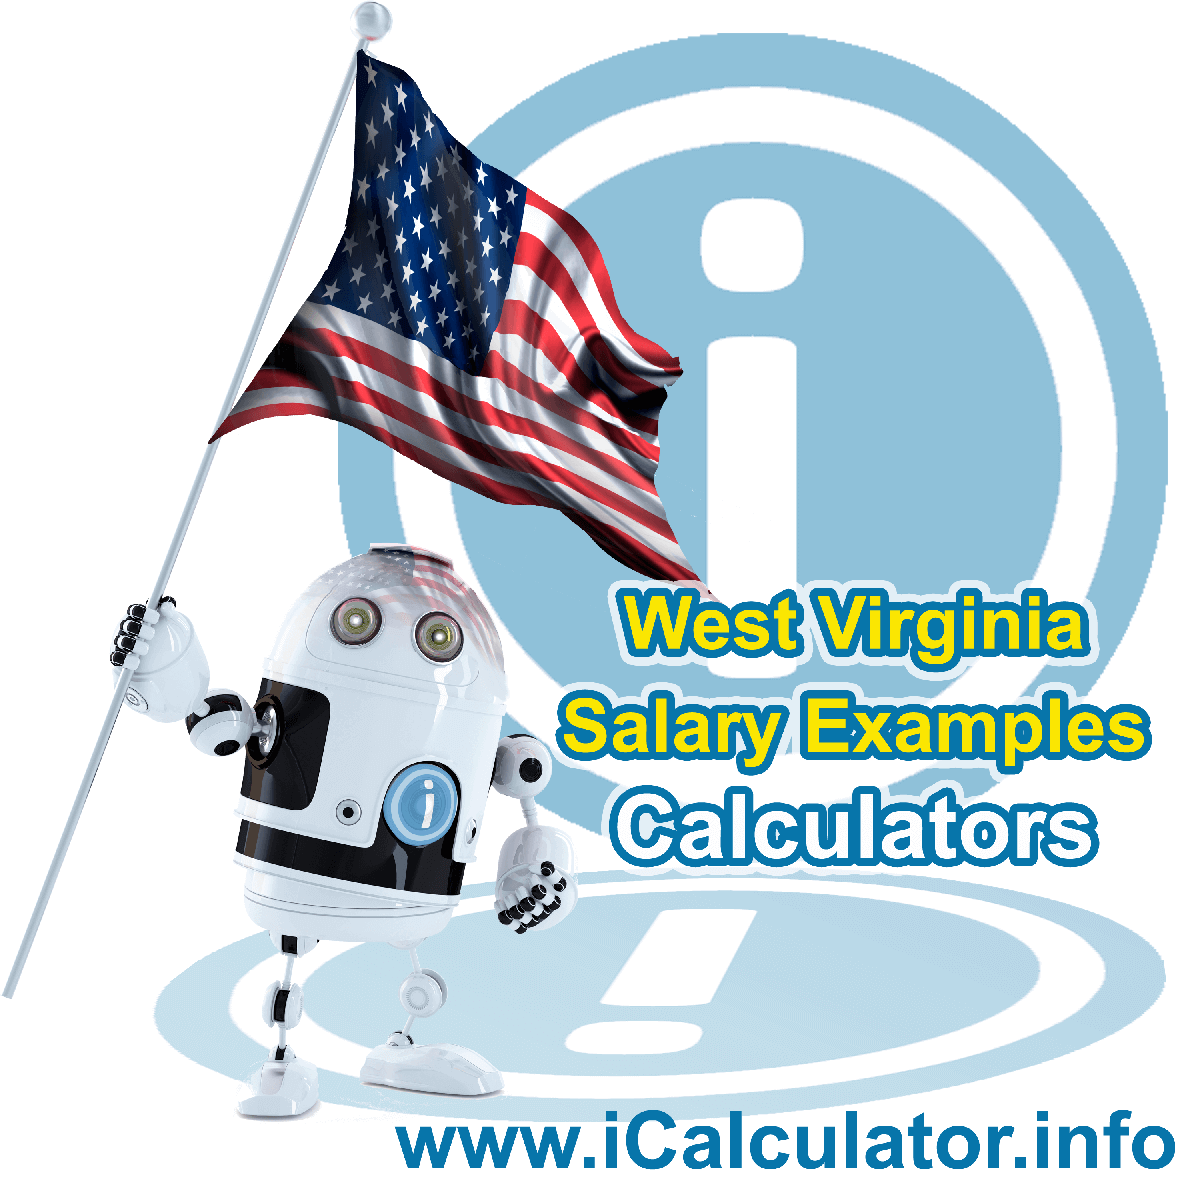 West Virginia Salary Example for a $240.00 Annual Salary in 2020 | iCalculator | $240.00 salary example for employee and employer paying West Virginia State tincome taxes. Detailed salary after tax calculation including West Virginia State Tax, Federal State Tax, Medicare Deductions, Social Security, Capital Gains and other income tax and salary deductions complete with supporting West Virginia state tax tables